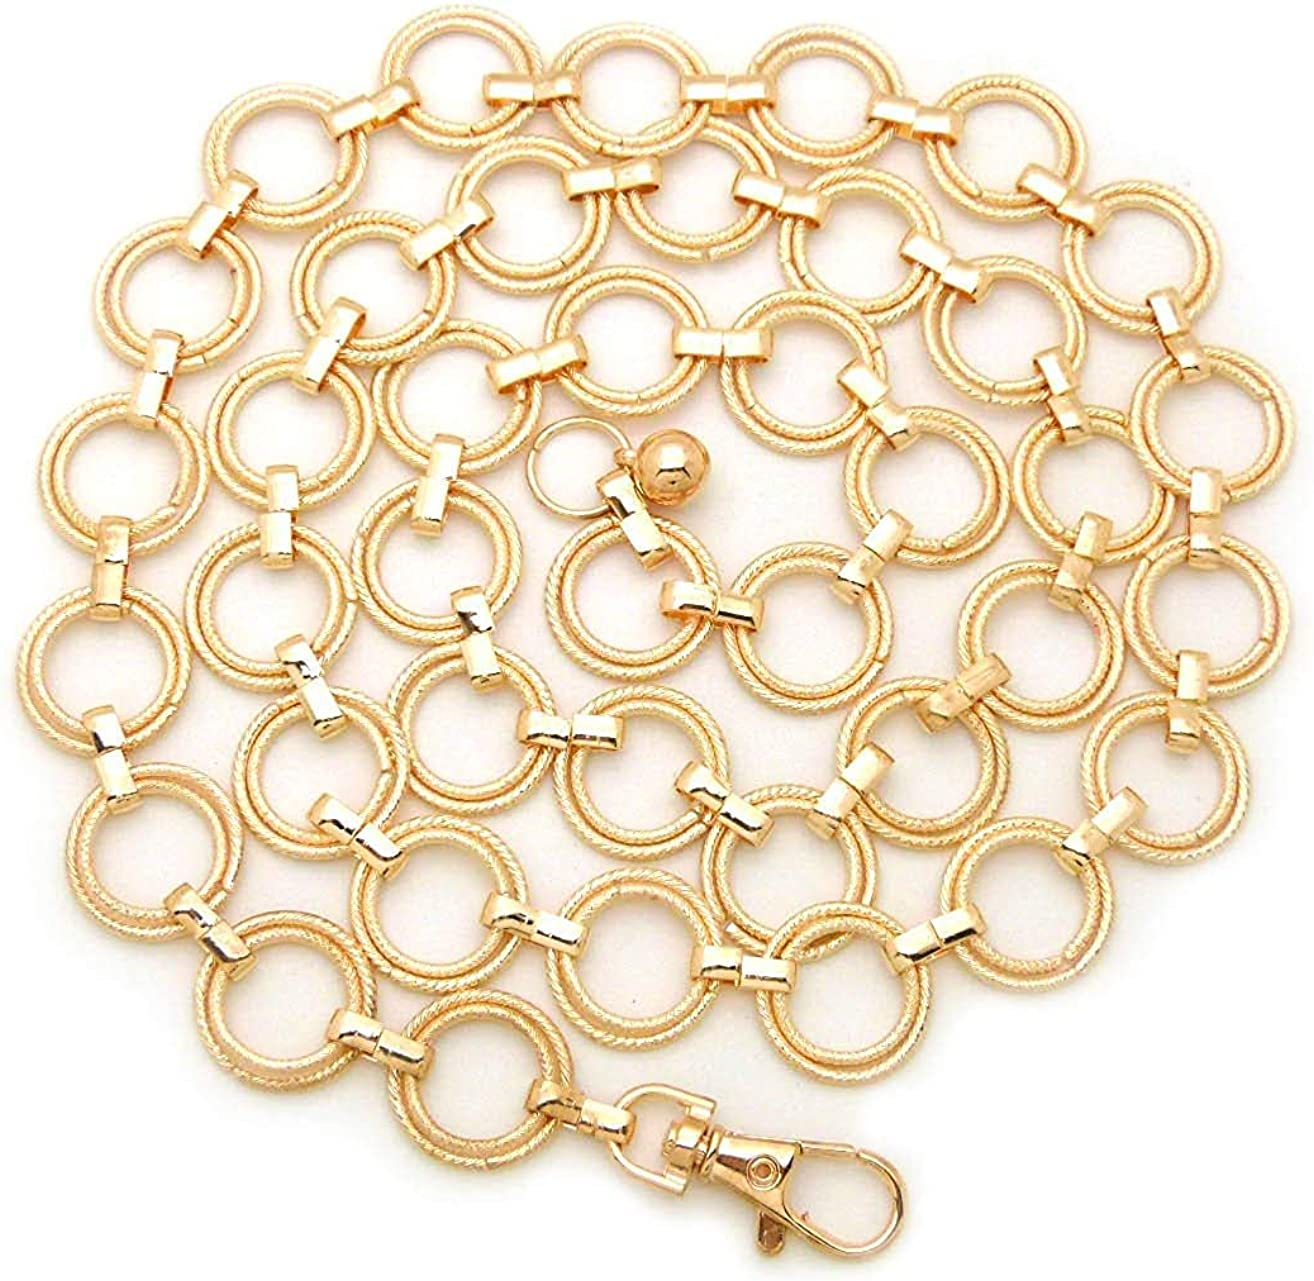 Women's Polished O- Ring All Over Links Metal Link Chain Waist Fashion Belt